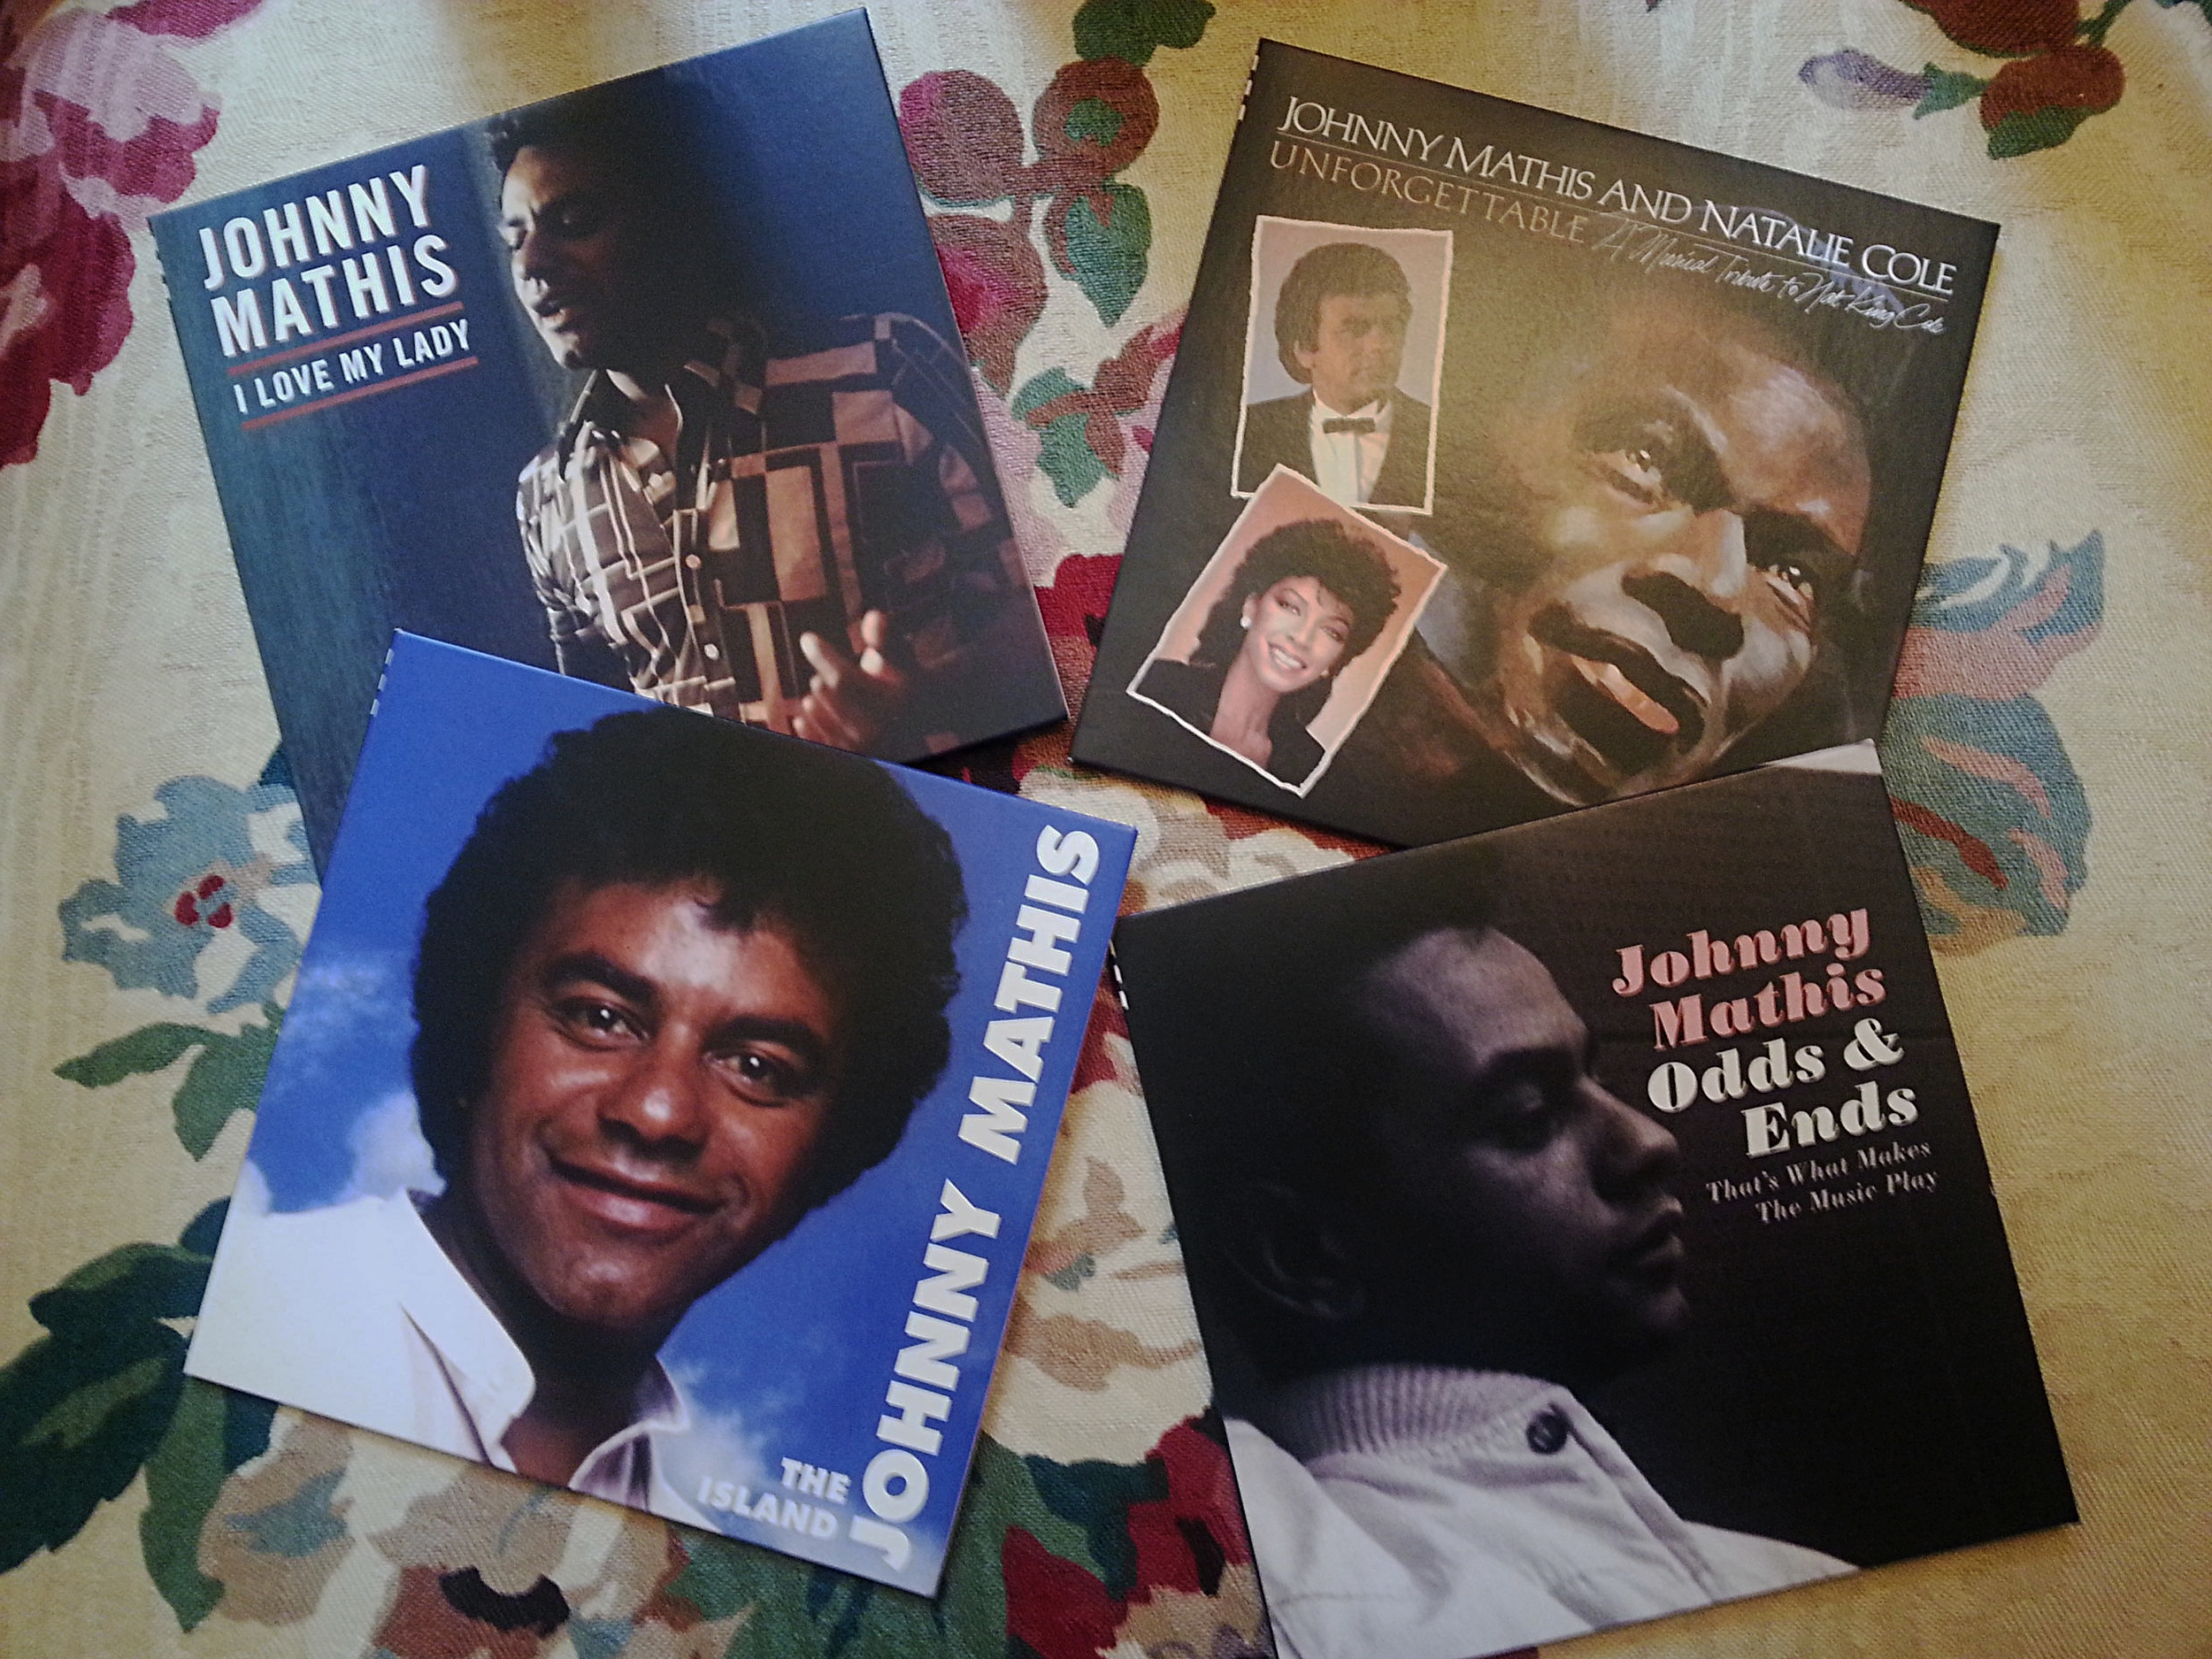 The boxed set includes four special albums, three of which were never released. 1983's  Unforgettable  and 1989's  The Island  are two of the vocalist's finest recordings.